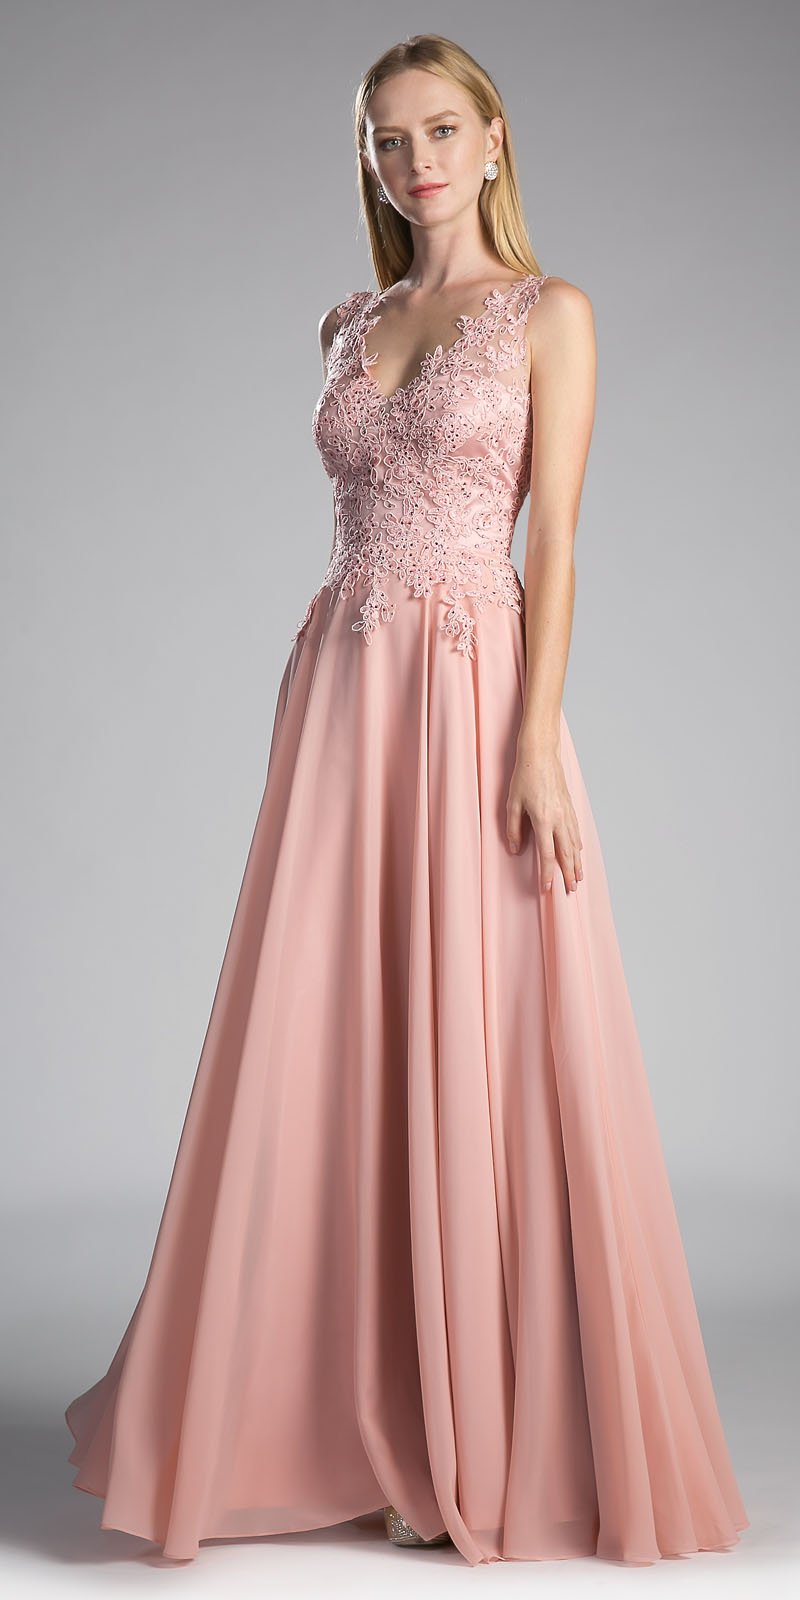 Blush long bridesmaid gown